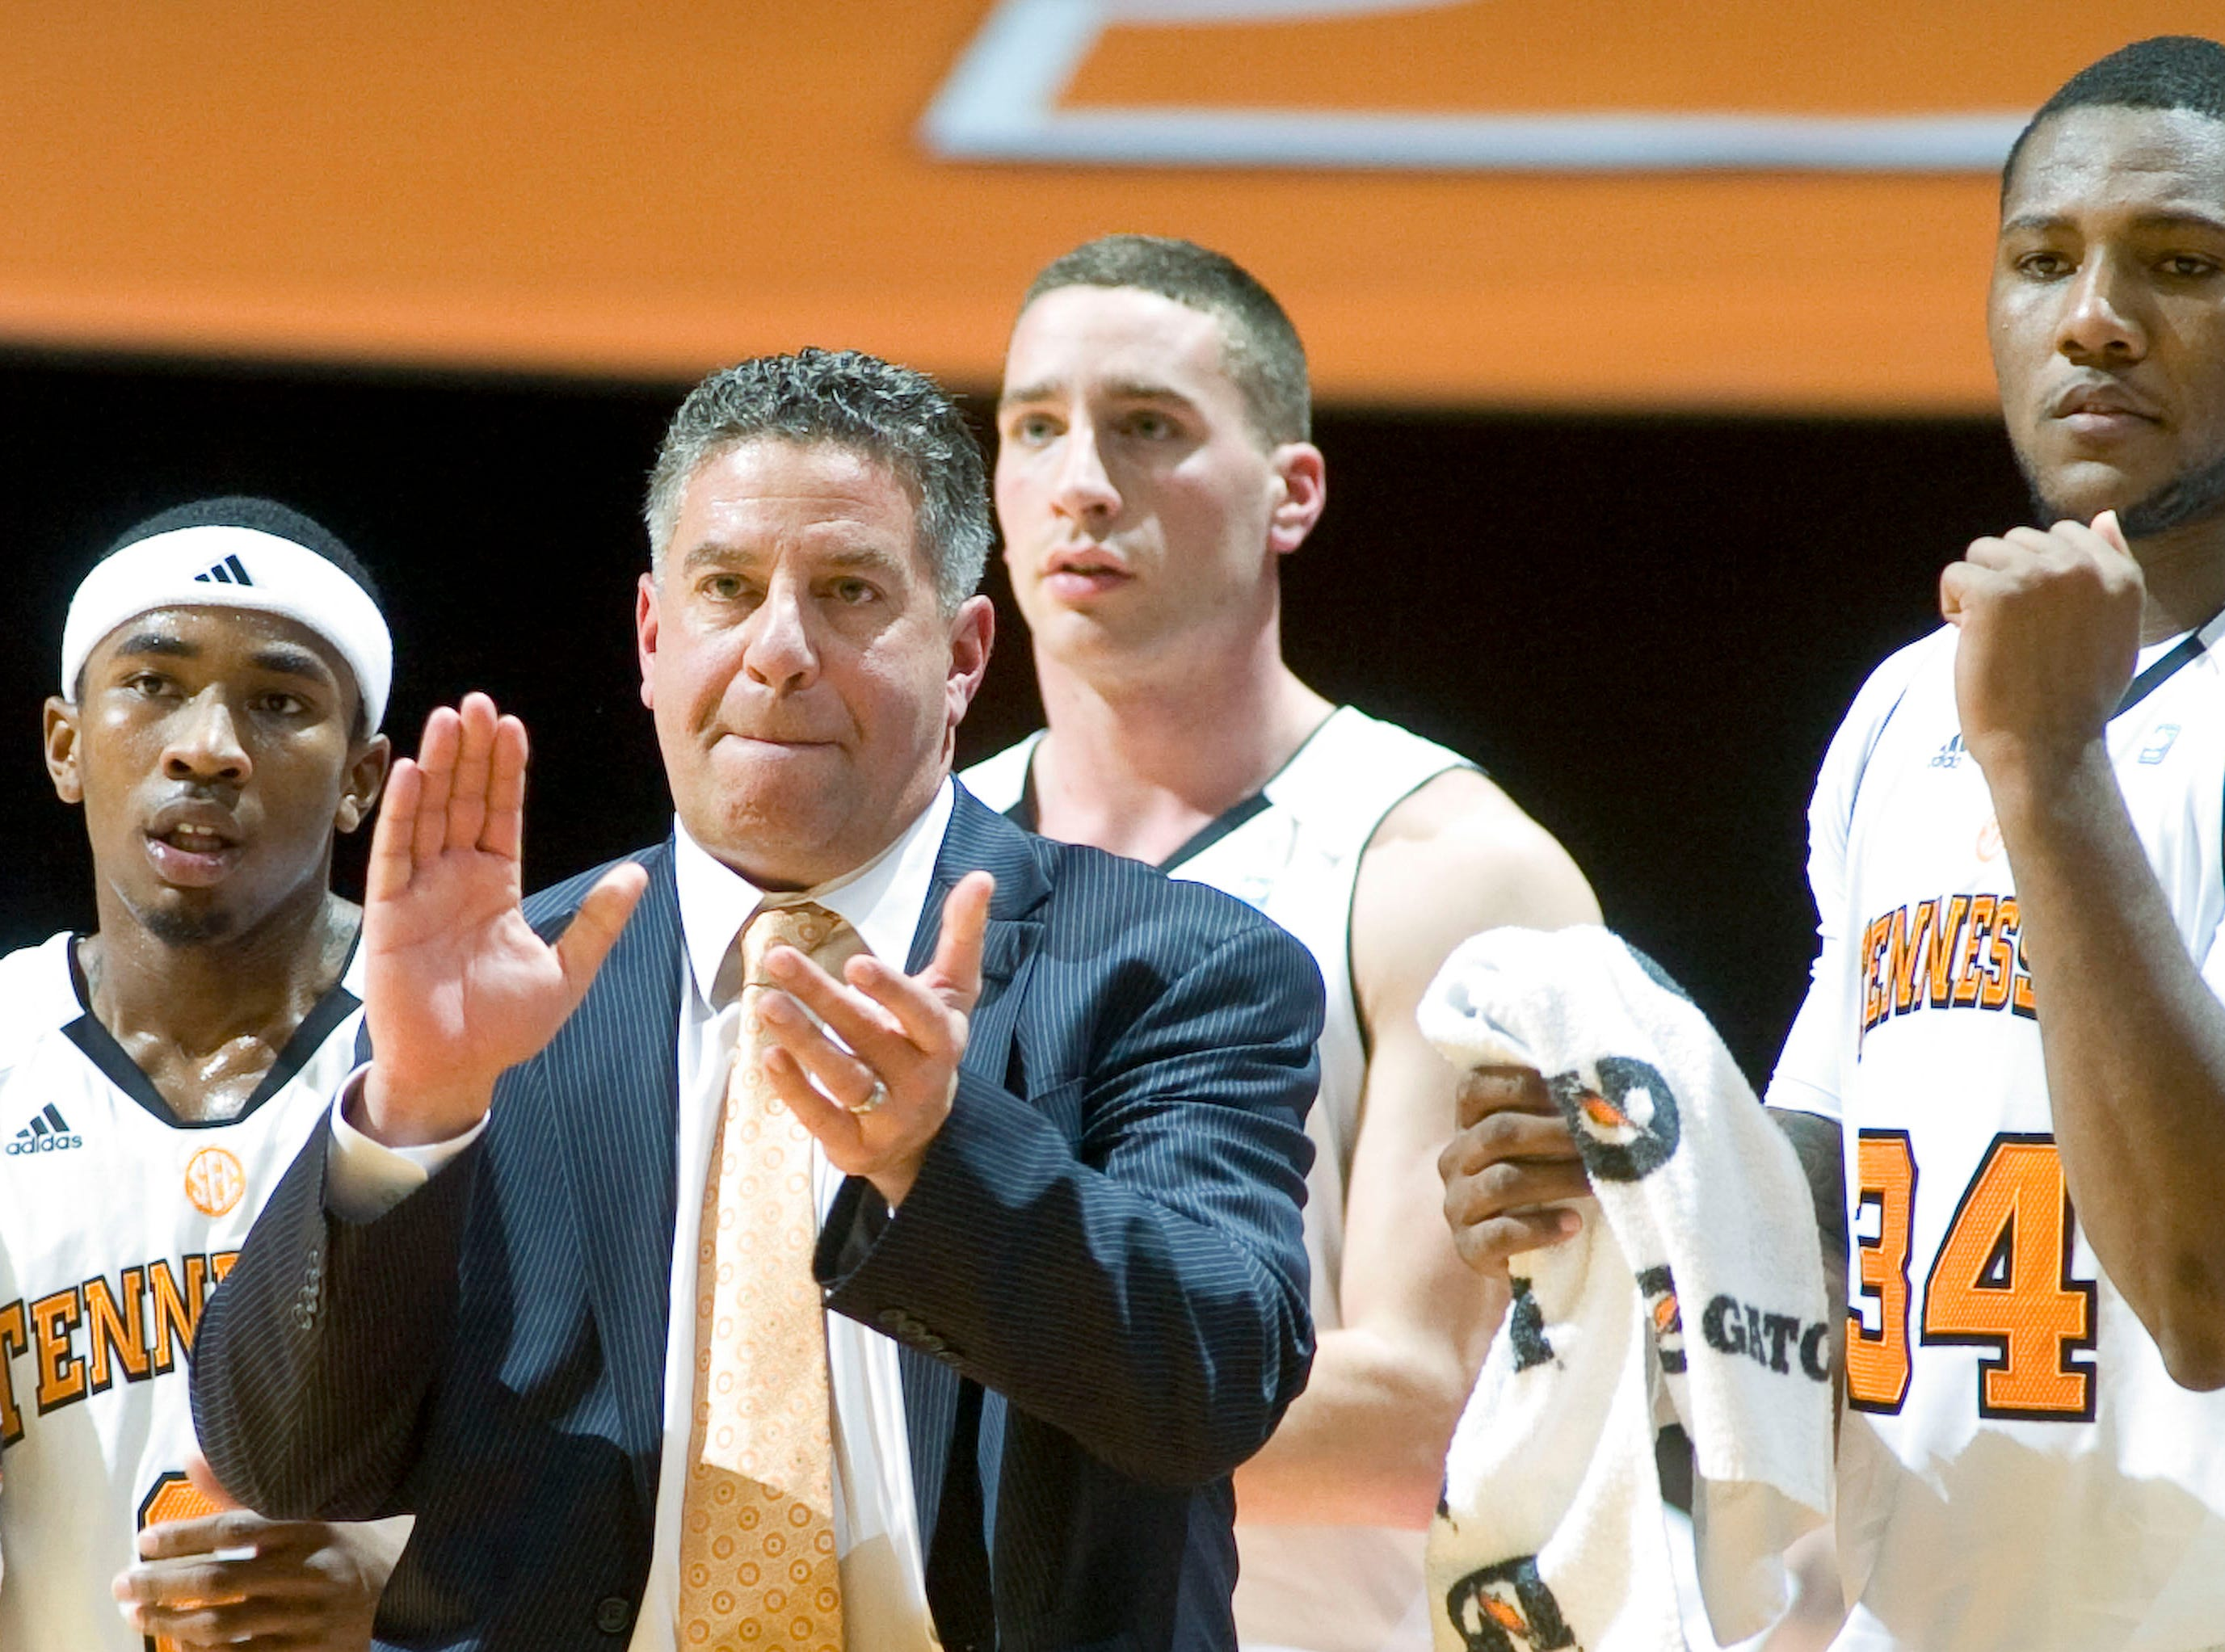 Tennessee coach Bruce Pearl cheers on his team with from left, Melvin Goins, Steven Pearl, and Jeronne Maymon. The USC Trojans defeat the Tennessee Volunteers 65-64 at Thompson-Boling Arena on Tuesday, December 21, 2010.